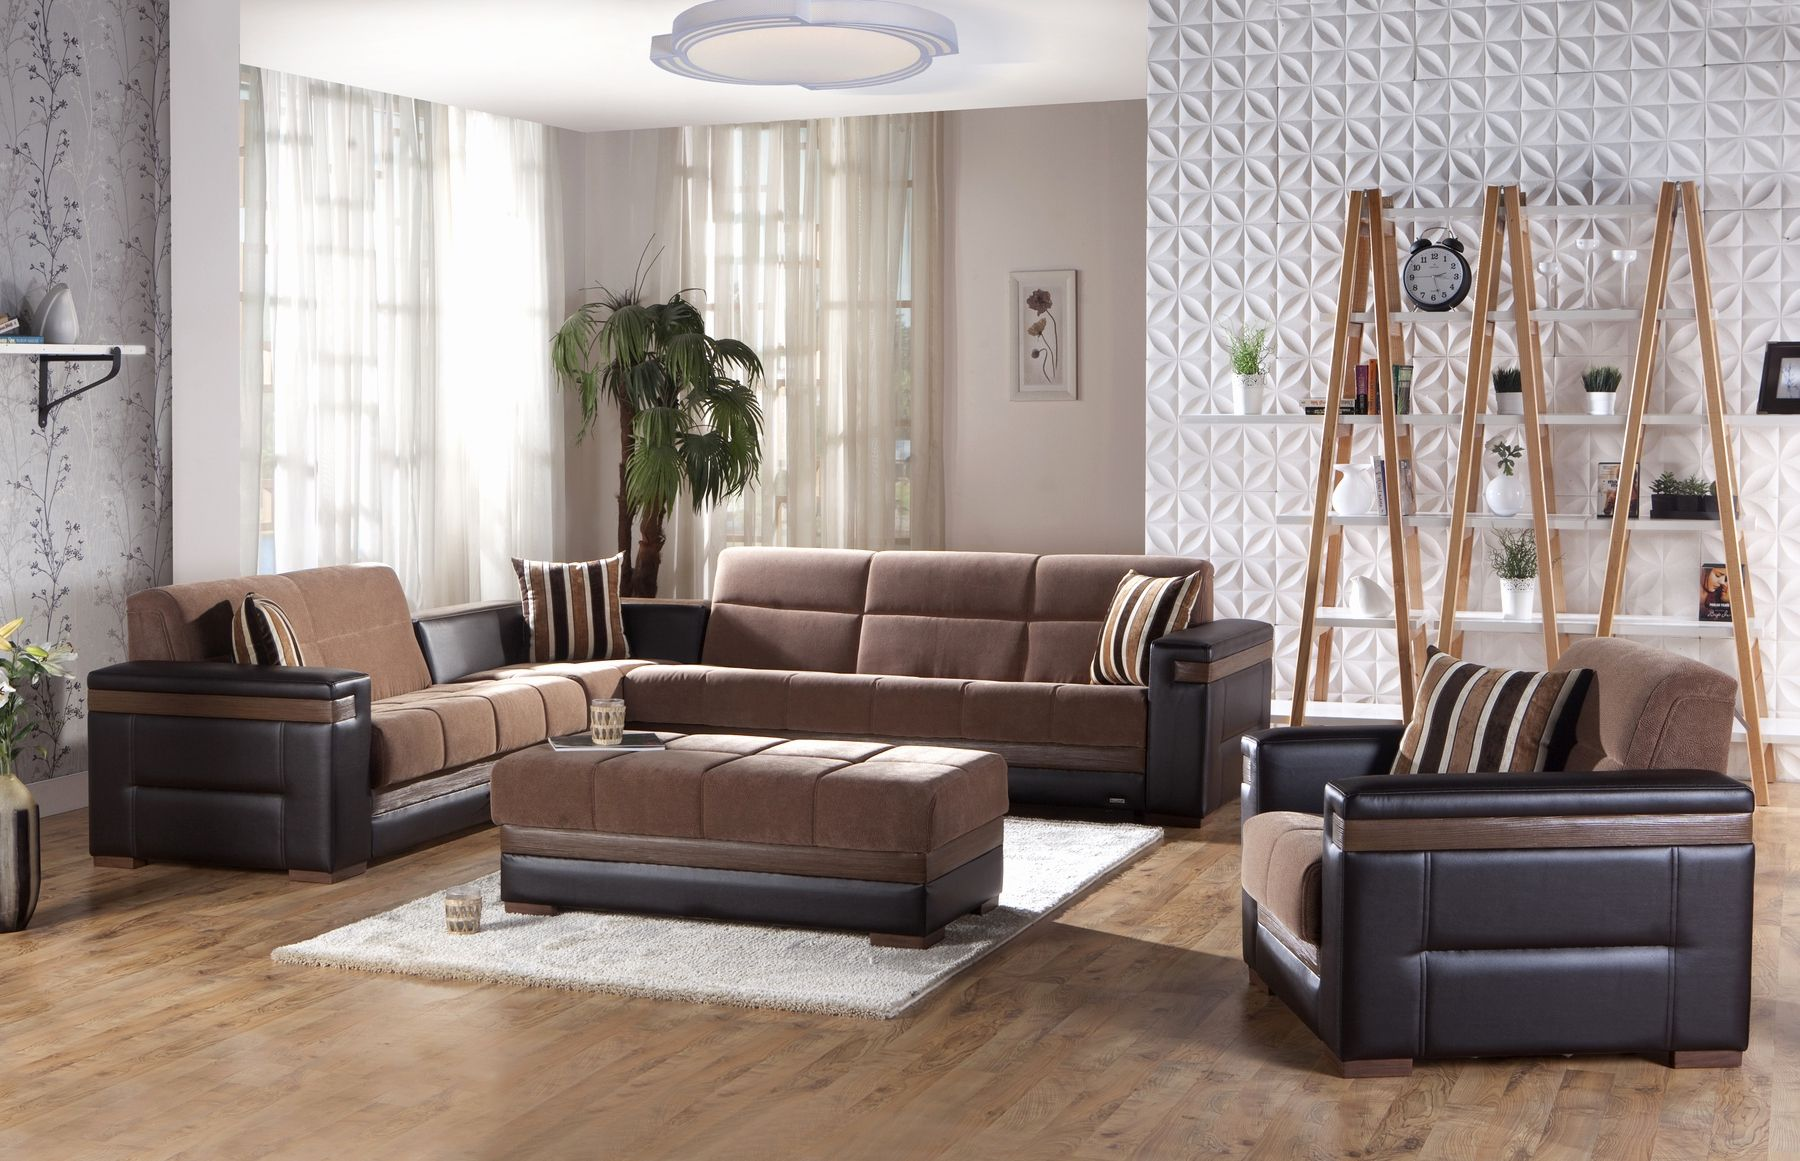 Elegant Microfiber Sofa Covers Picture Microfiber Sofa Covers Lovely Sofas  Magnificent Leather Sleeper Sofa Leather Reclining